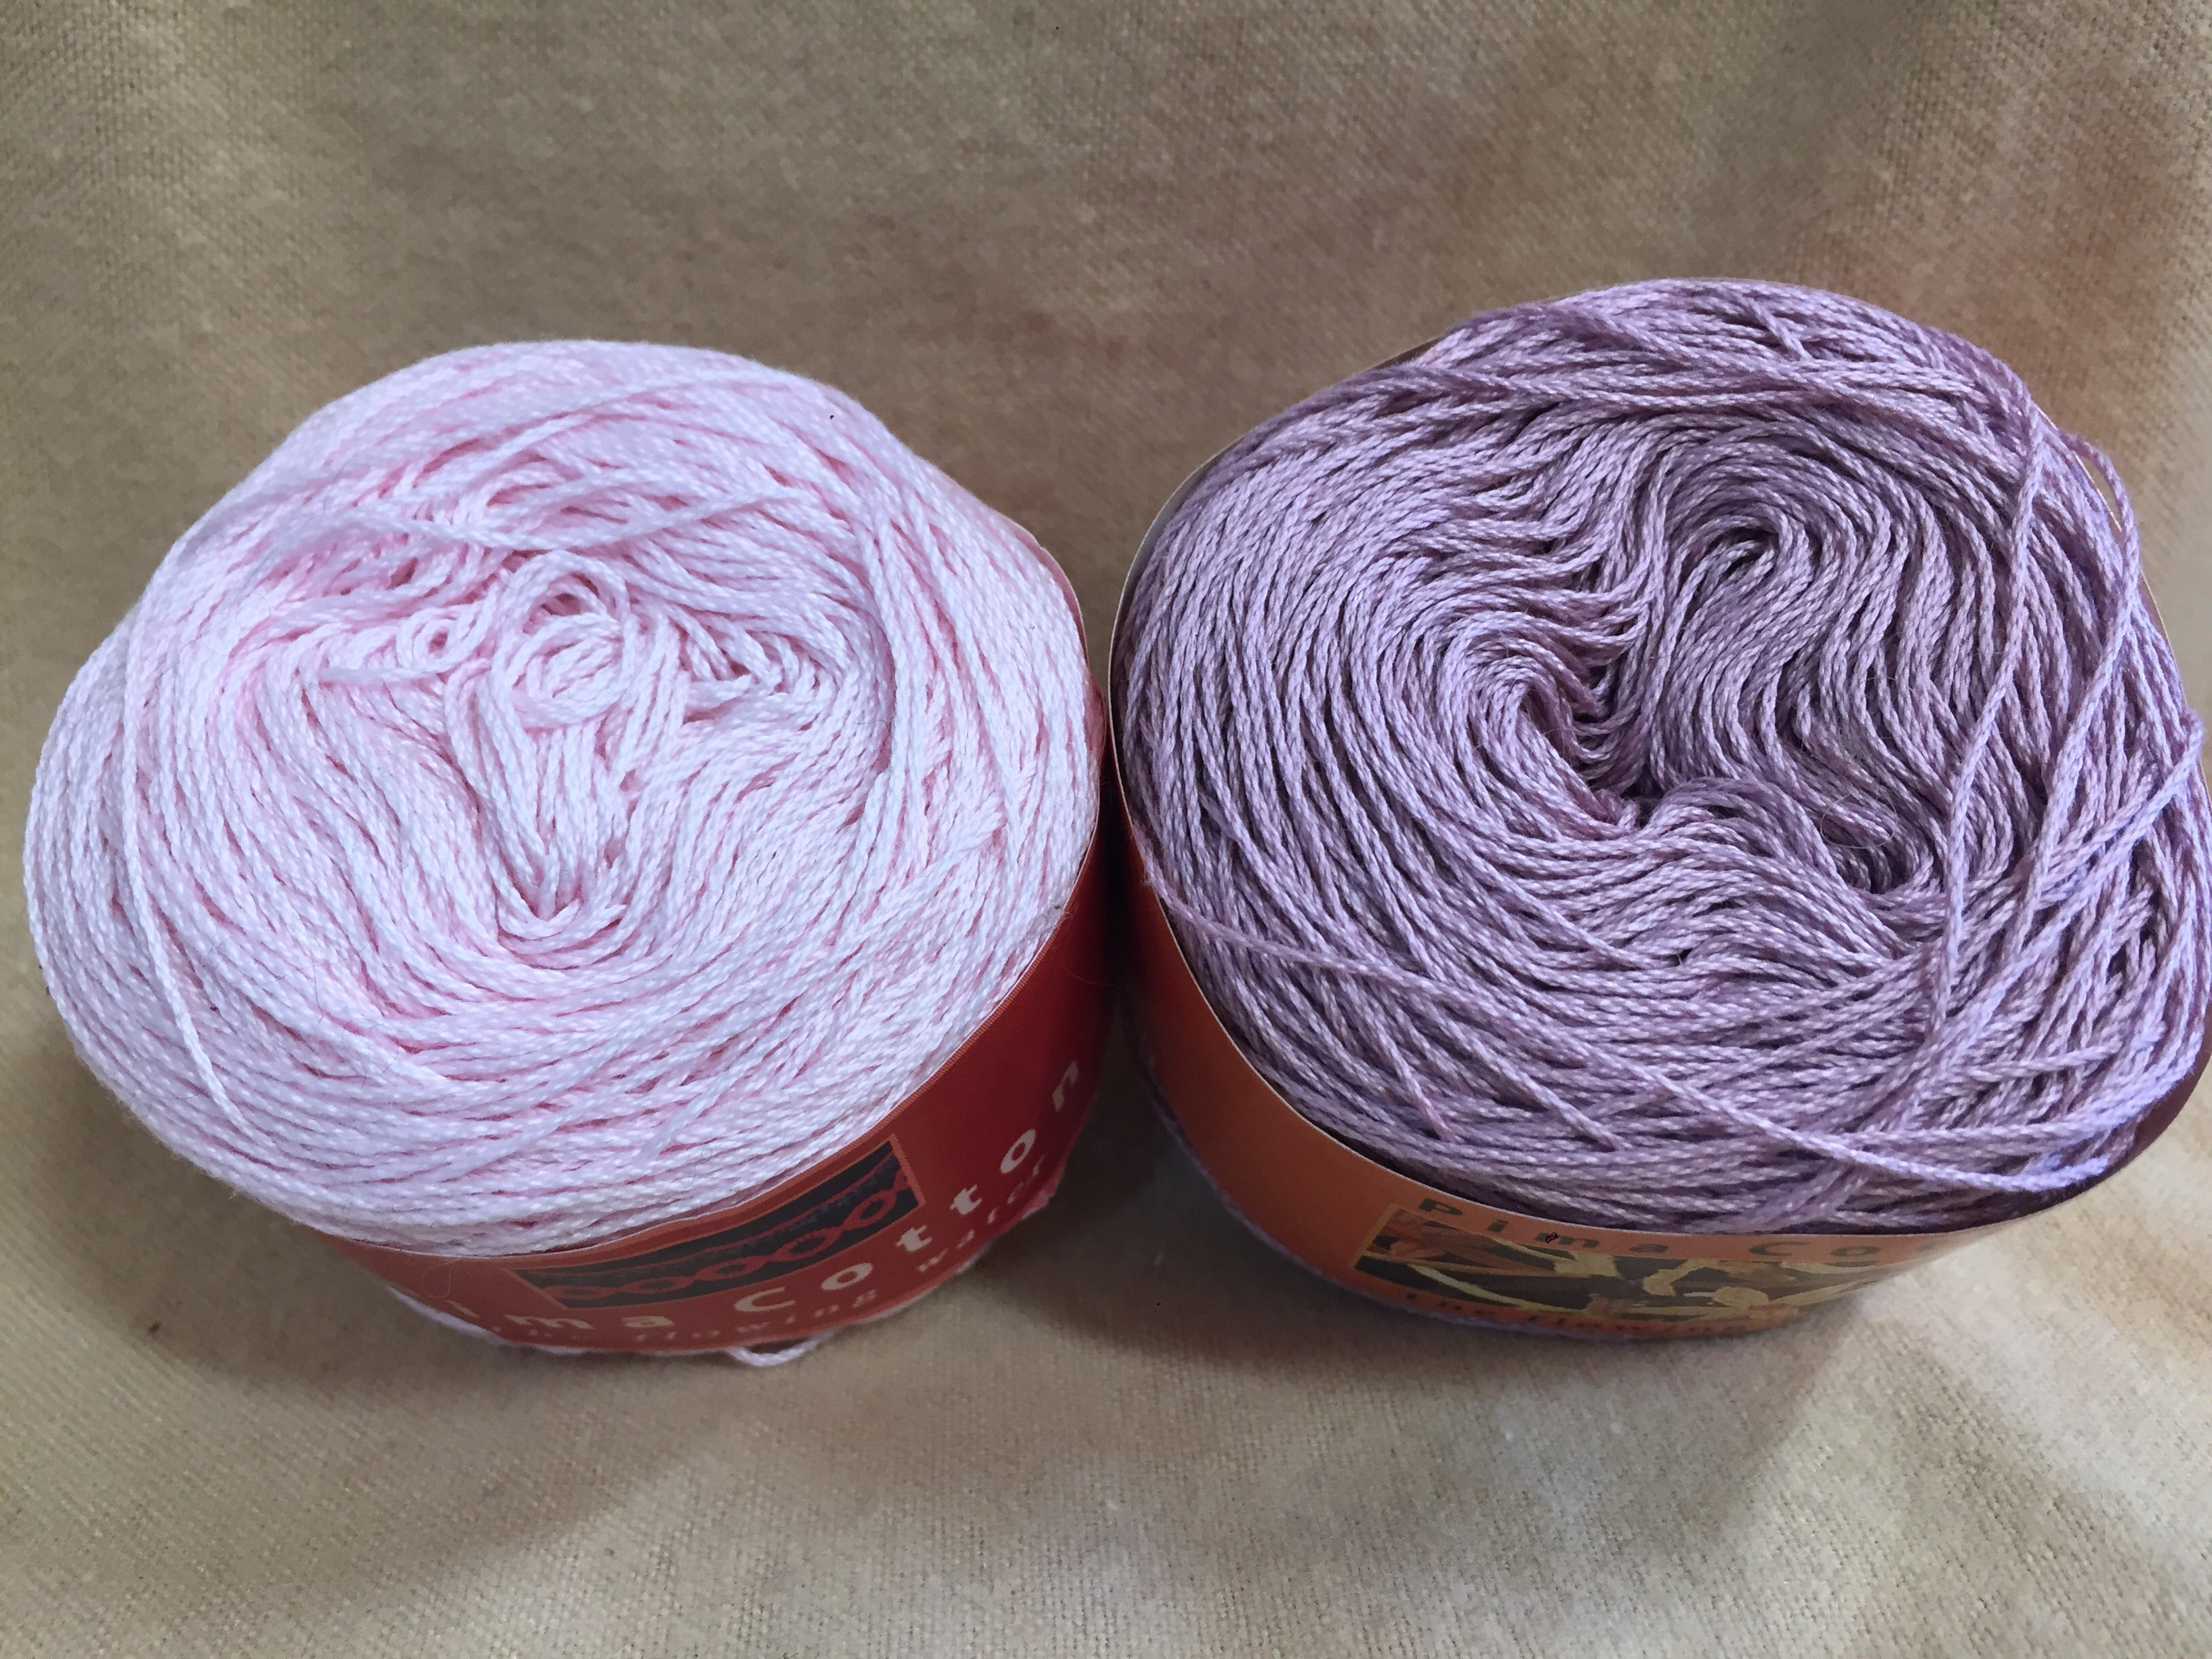 100% Pima Cotton Yarn / 2 Balls / Group #4